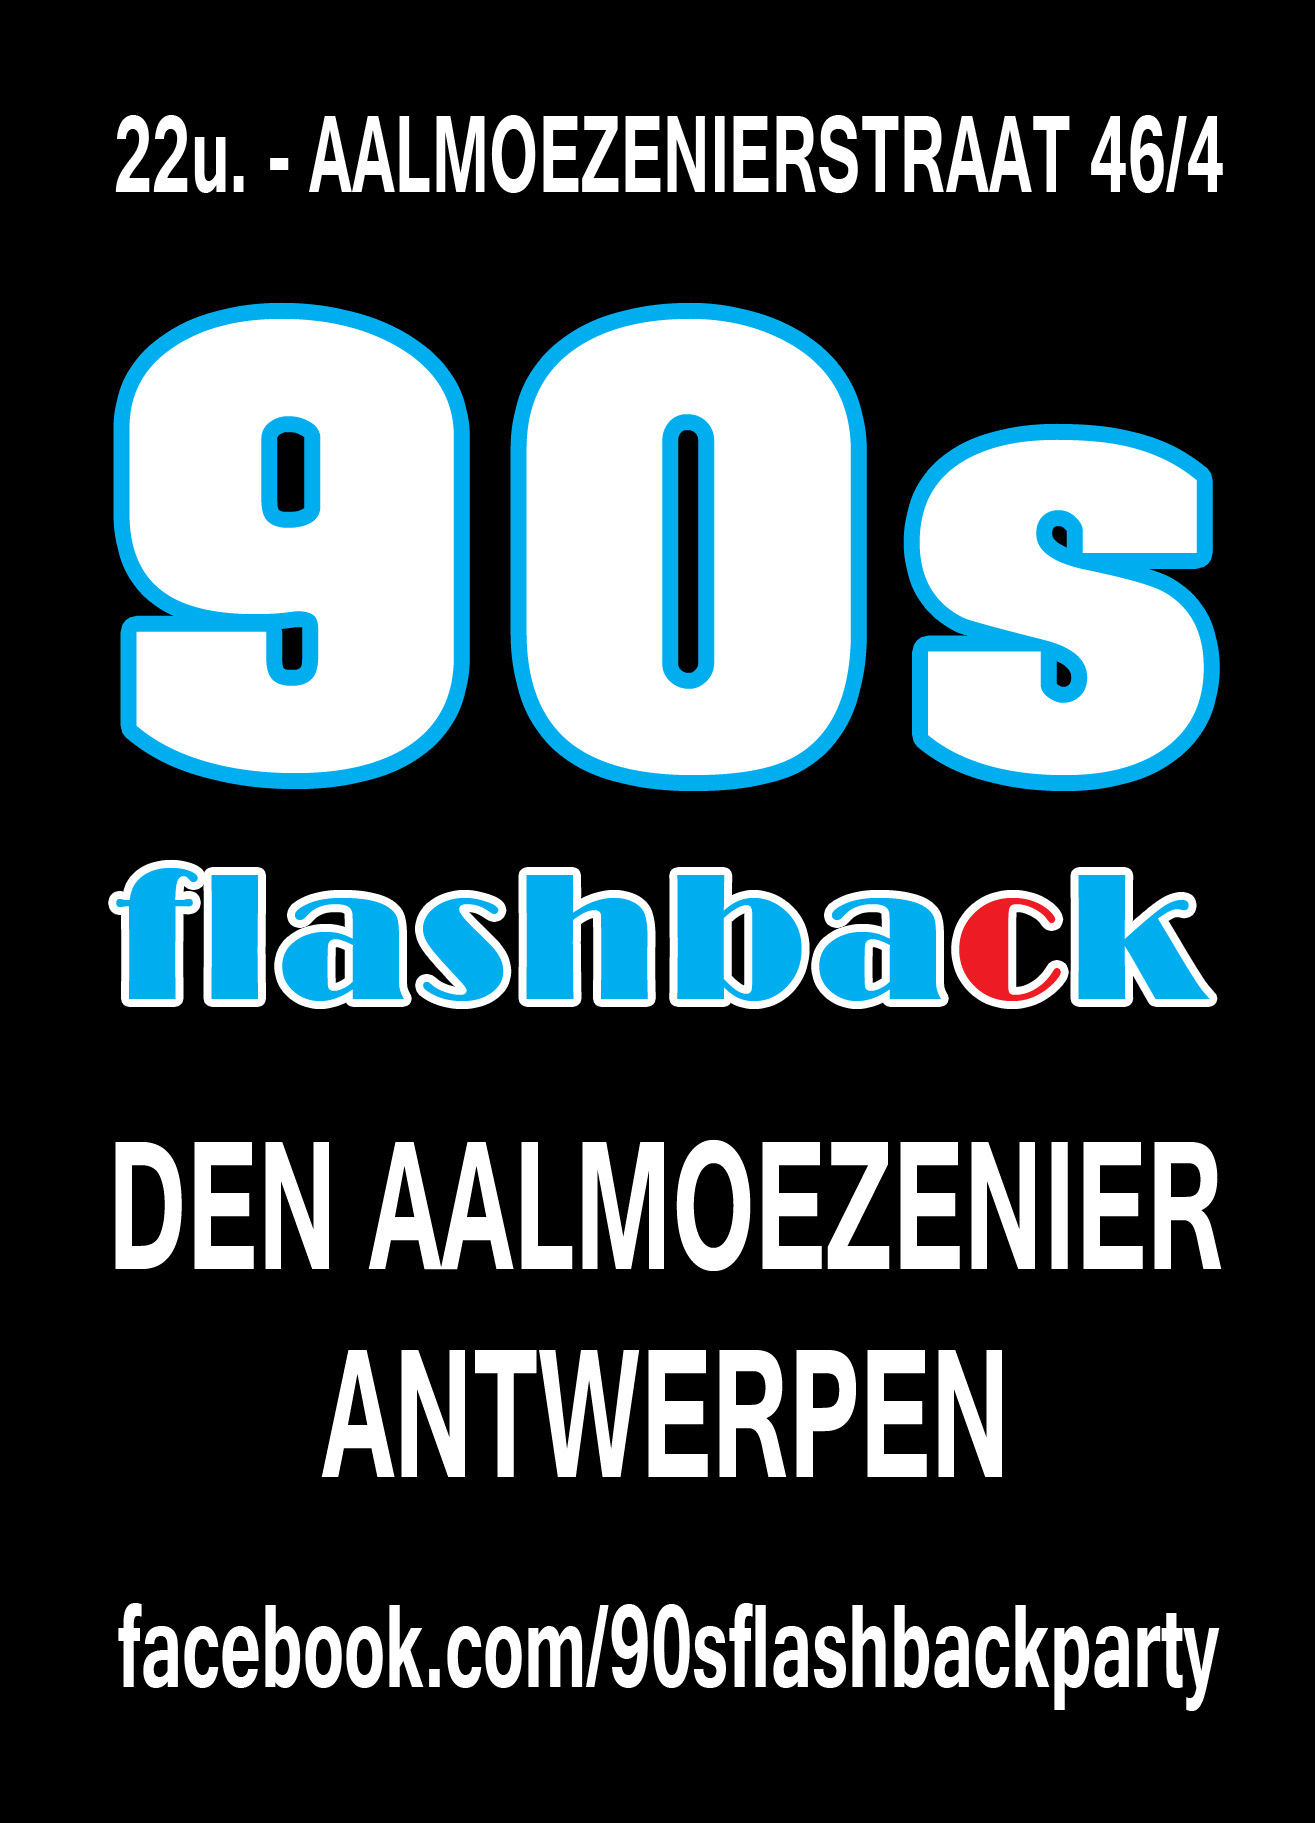 90s Flashback Party affiche op 20/10/2018